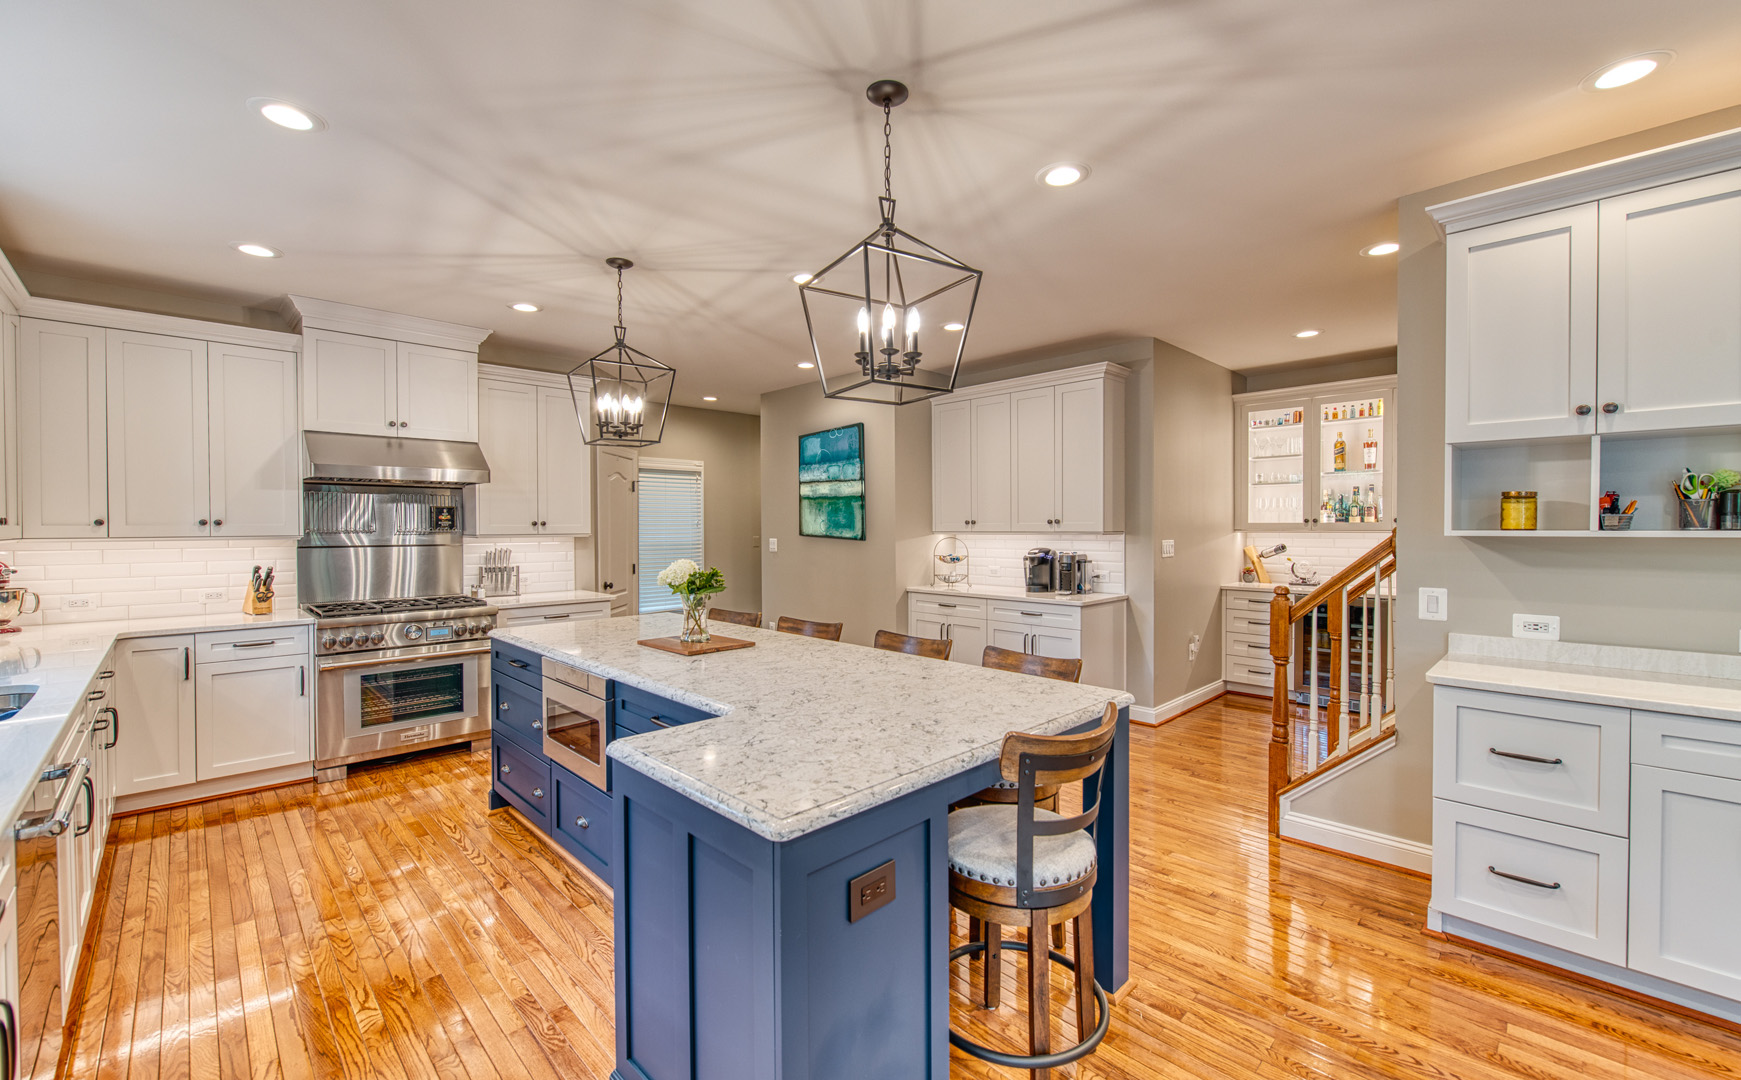 Large kitchen remodel in Vienna, VA with many cabinets and hardwood flooring